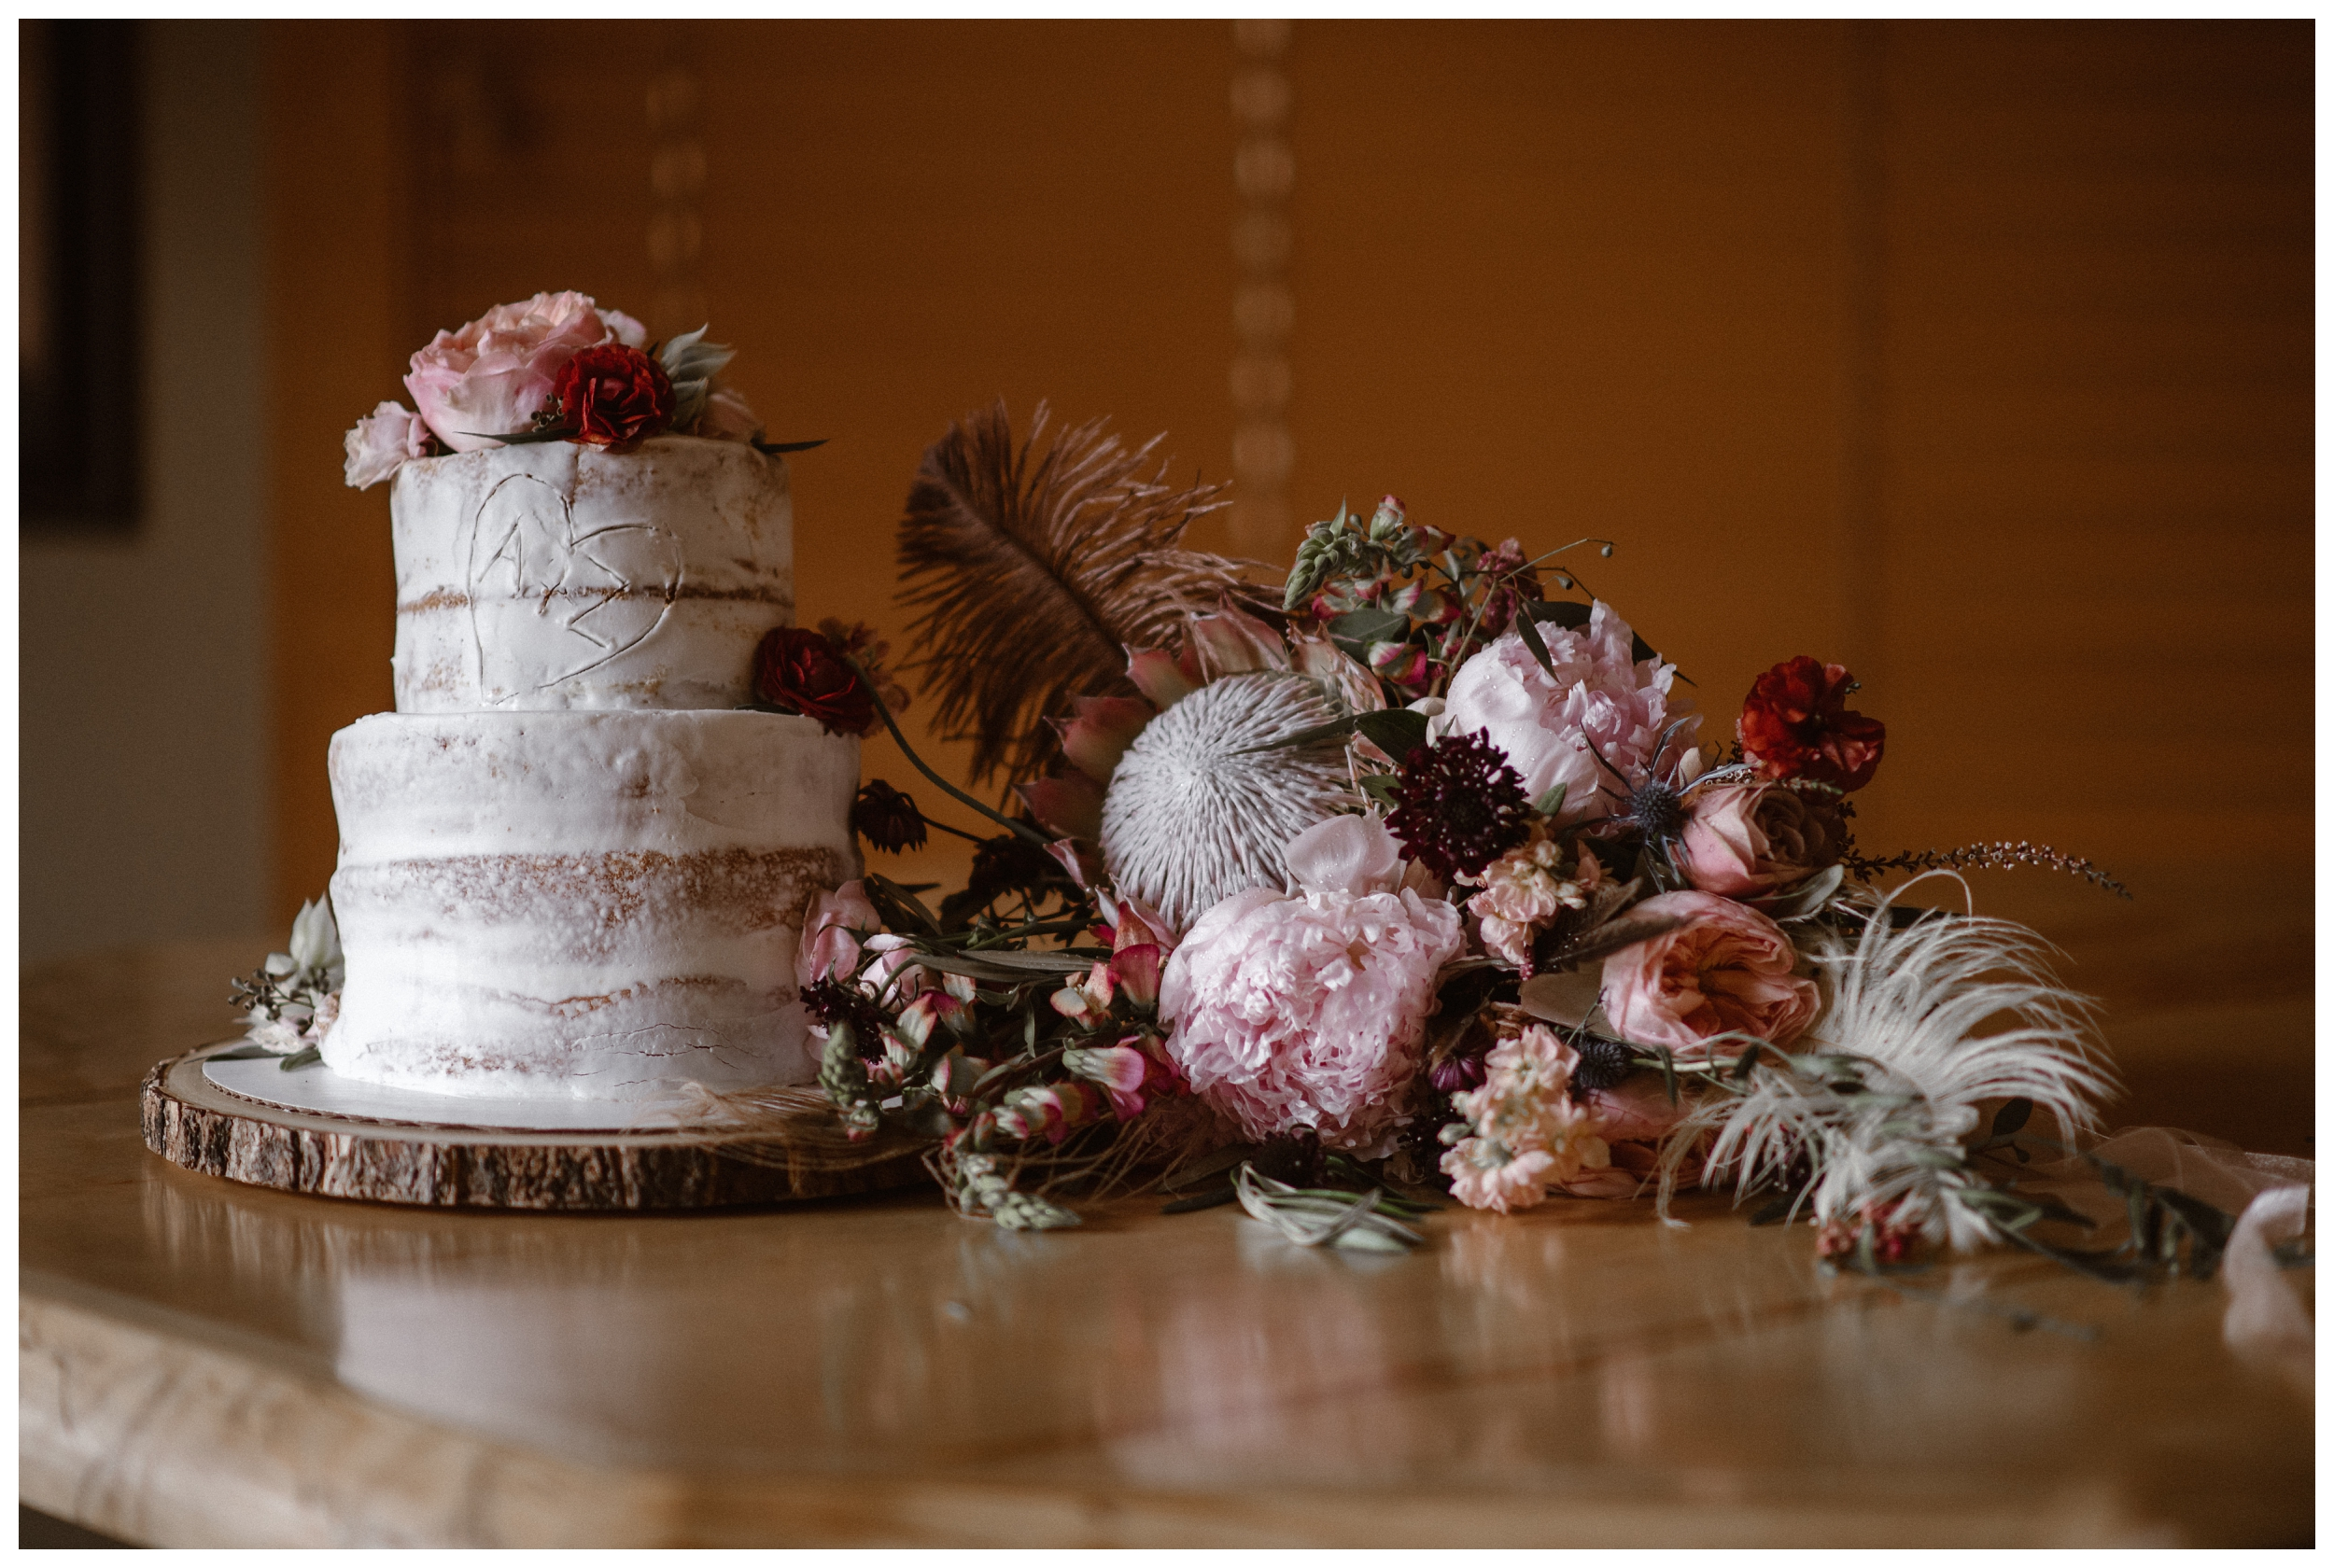 Alicia's bridal bouquet rests next to the wedding cake that mimics the Rocky Mountains plentiful aspen trees following their elopement ceremony at Rocky Mountain National Park in Estes Park, Colorado. Photo by Adventure Instead, Maddie Mae.